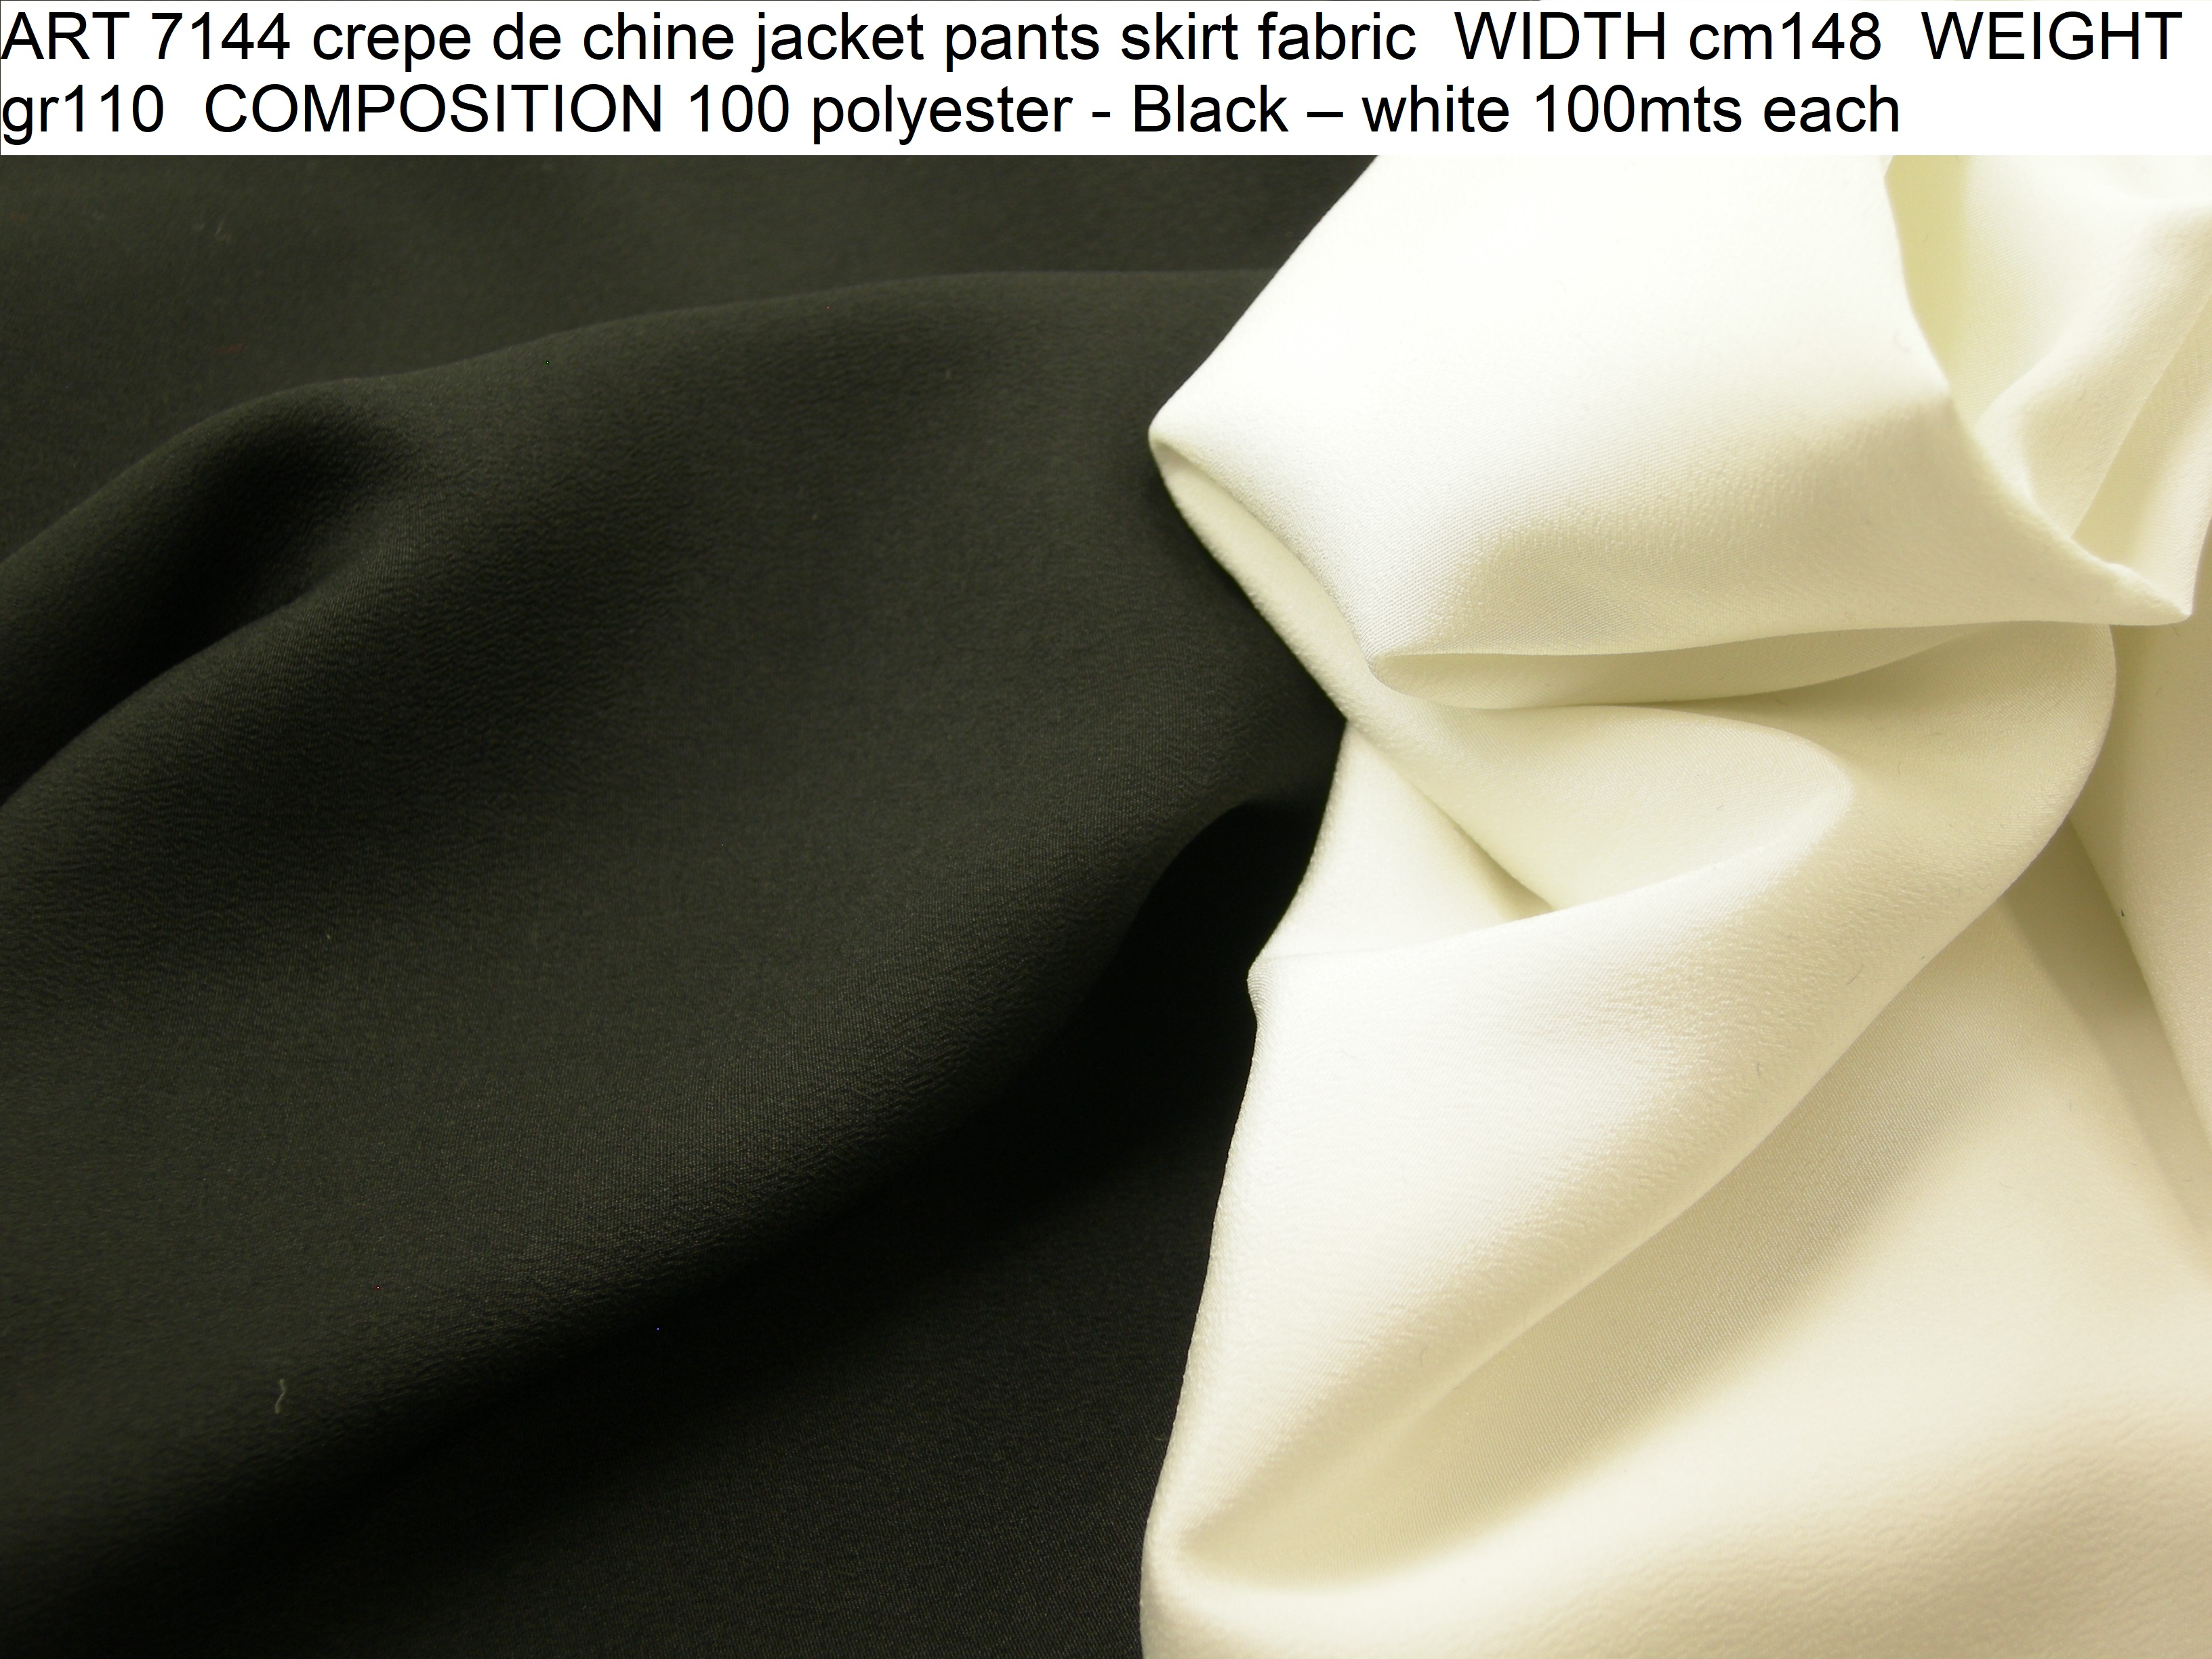 ART 7144 crepe de chine jacket pants skirt fabric WIDTH cm148 WEIGHT gr110 COMPOSITION 100 polyester - Black – white 100mts each